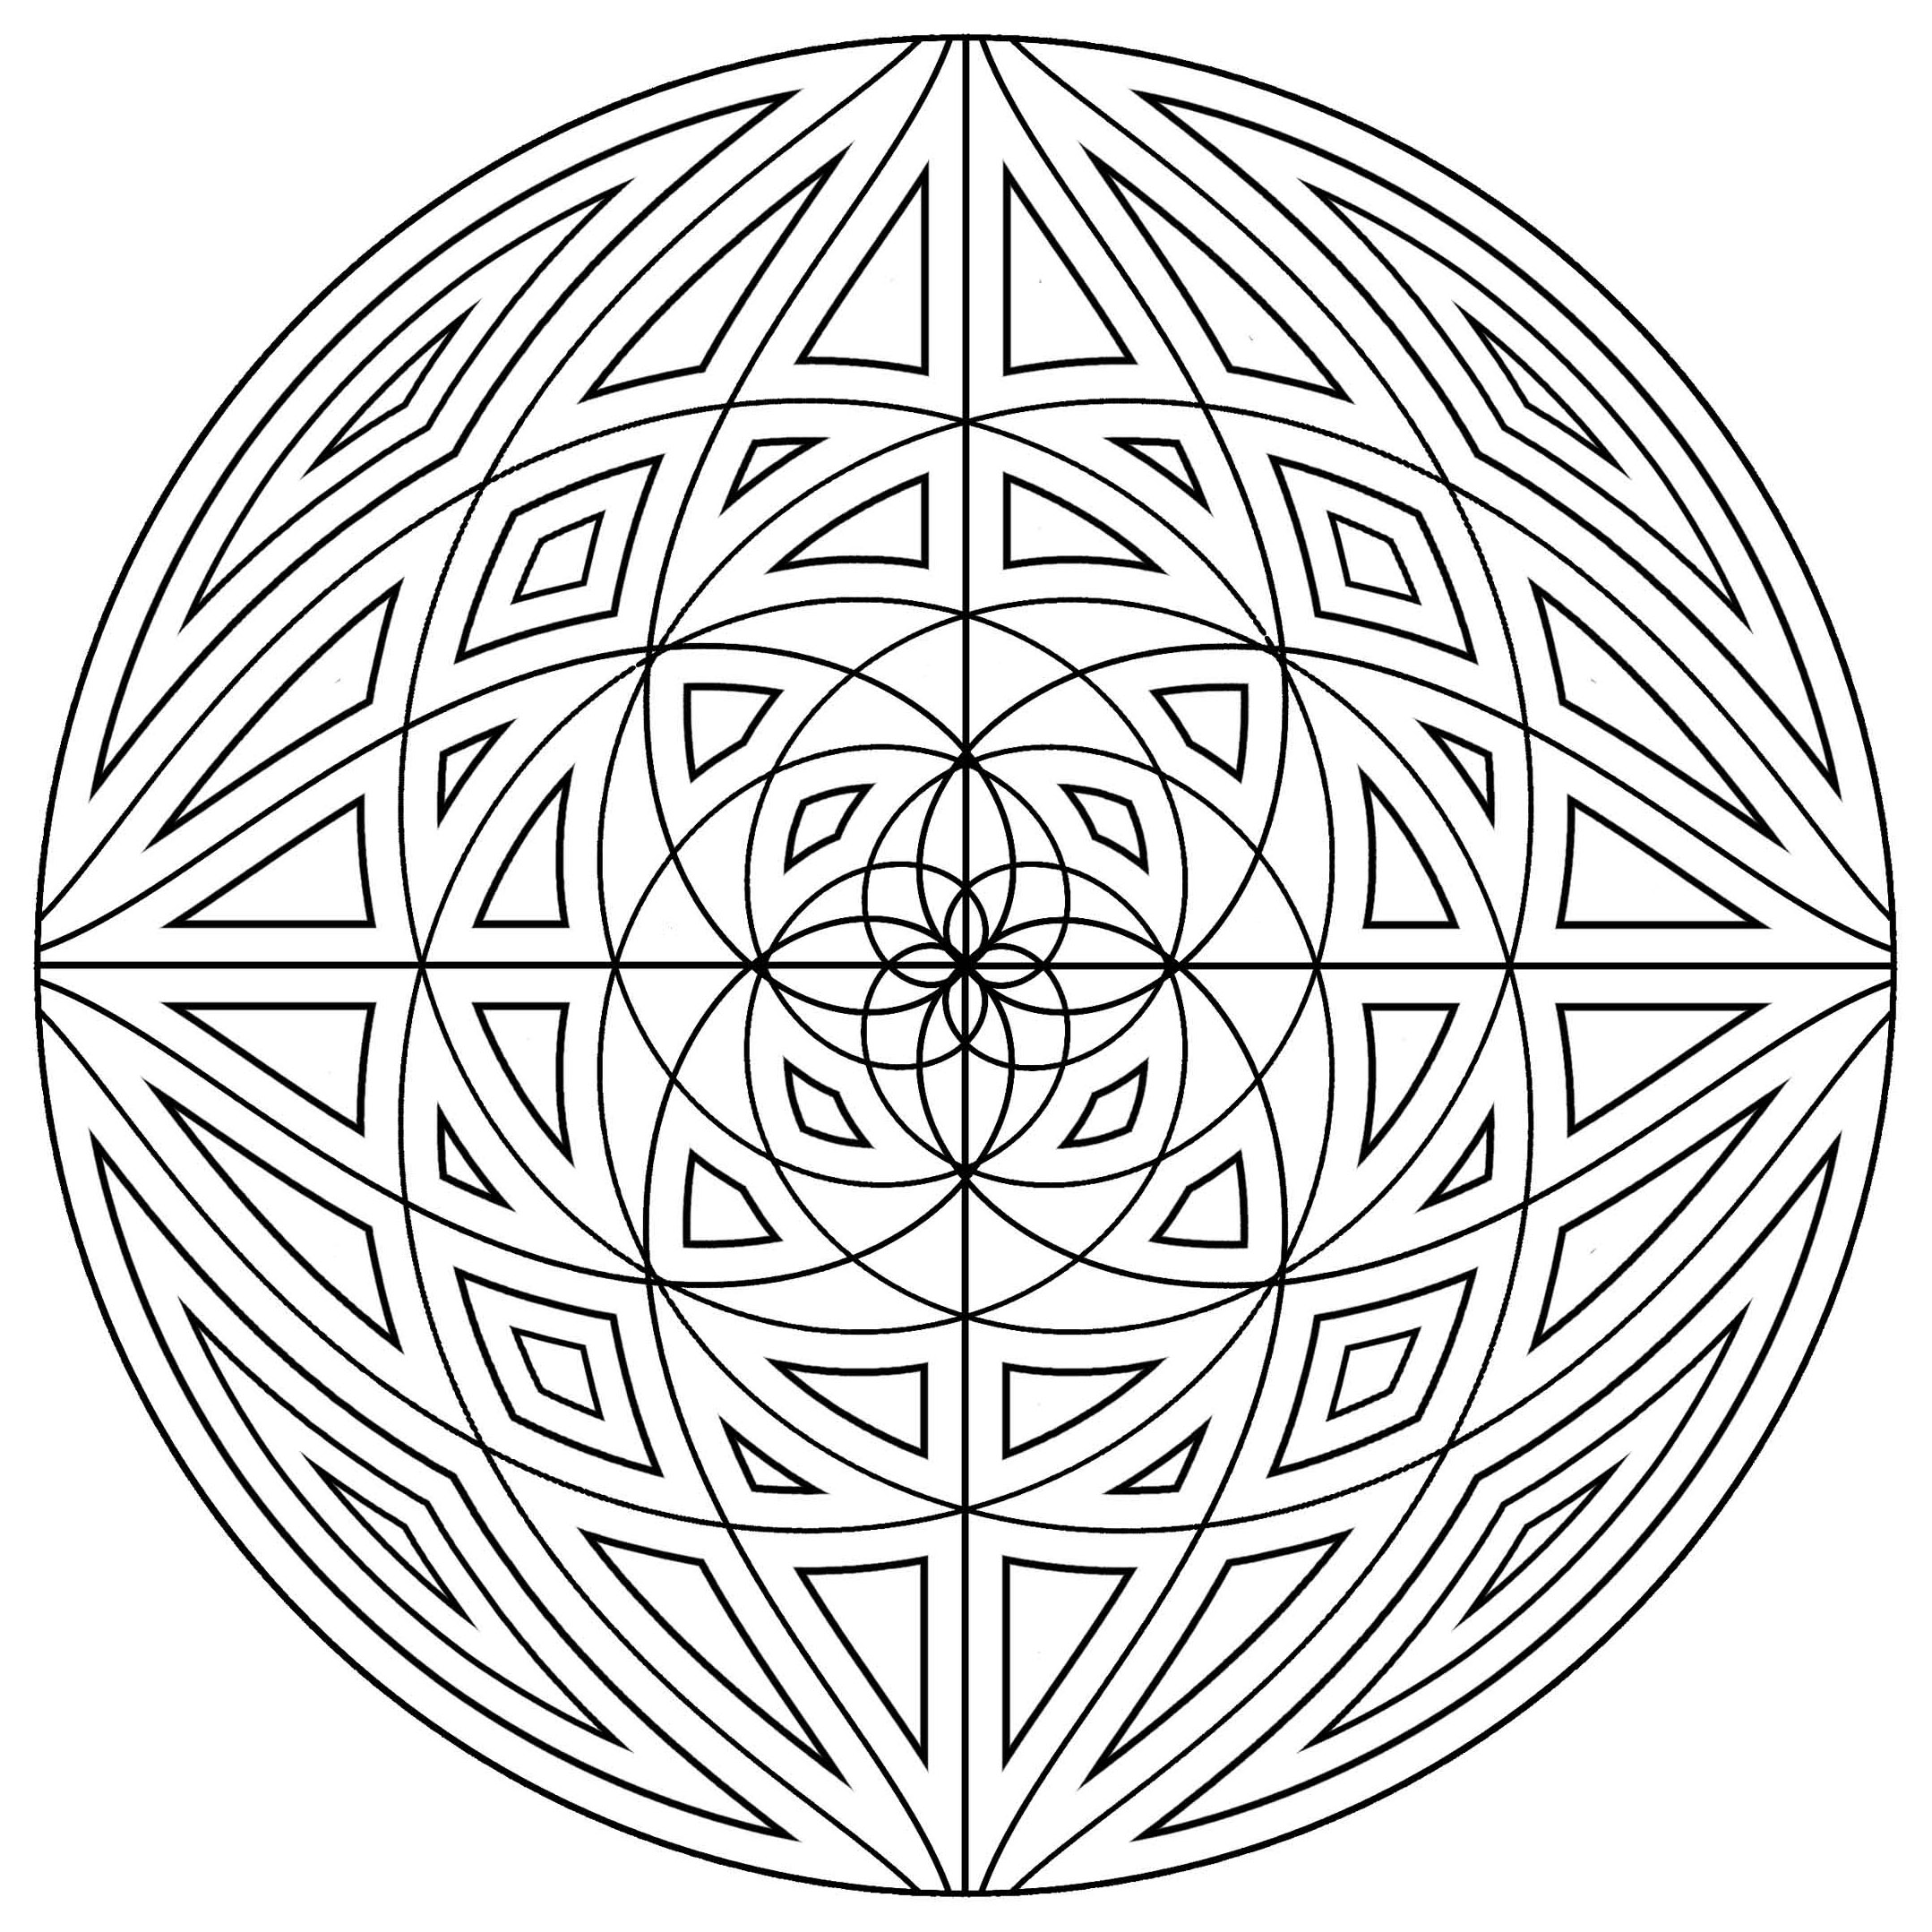 Mandala simple with concentric lines mandalas with for Simple geometric designs coloring pages